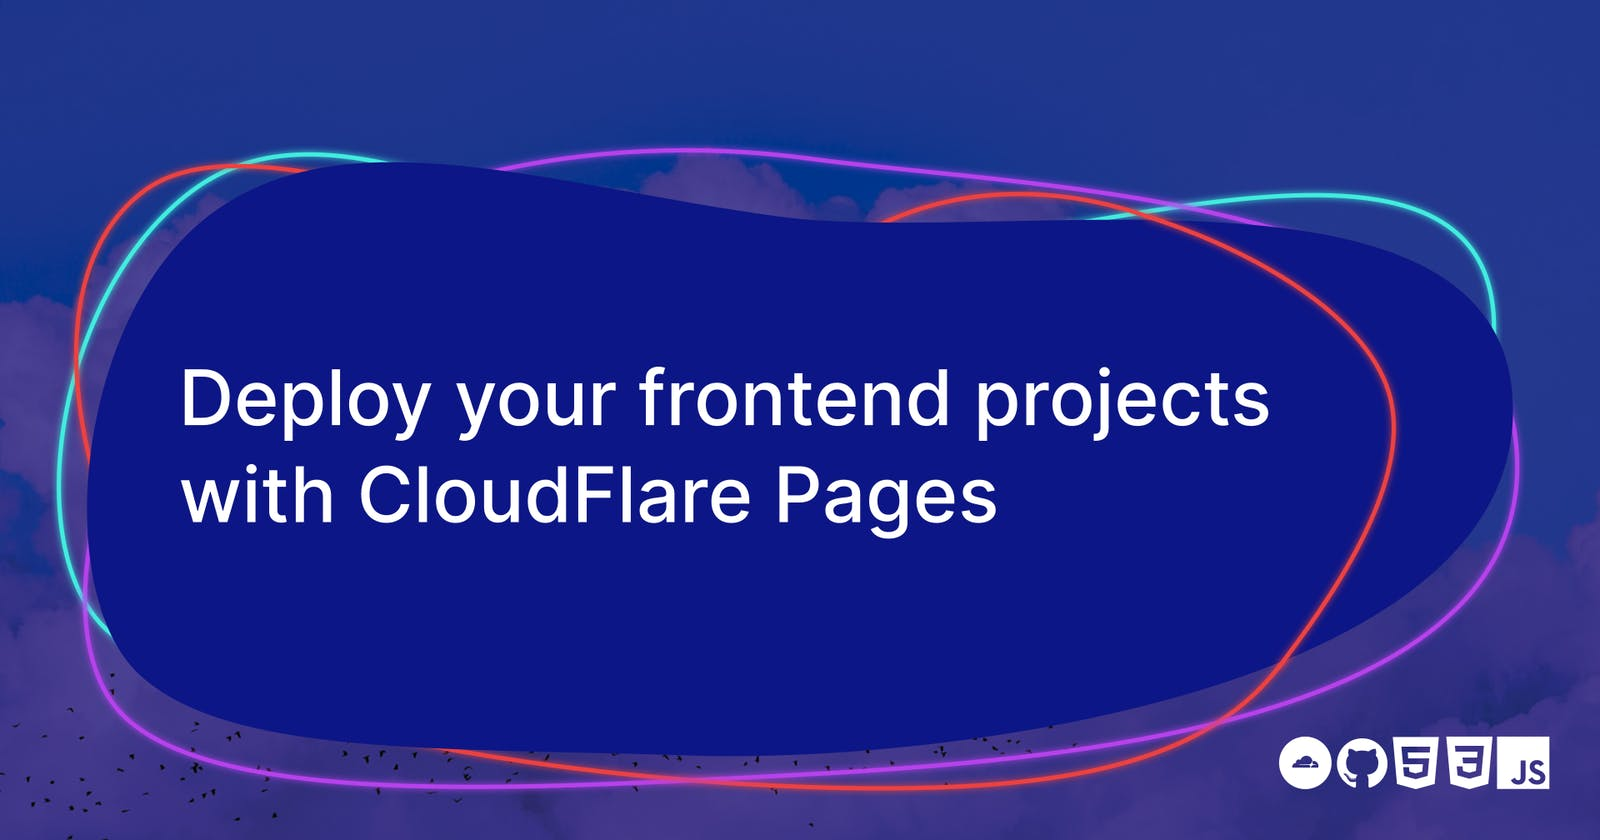 Deploy your frontend projects with CloudFlare Pages